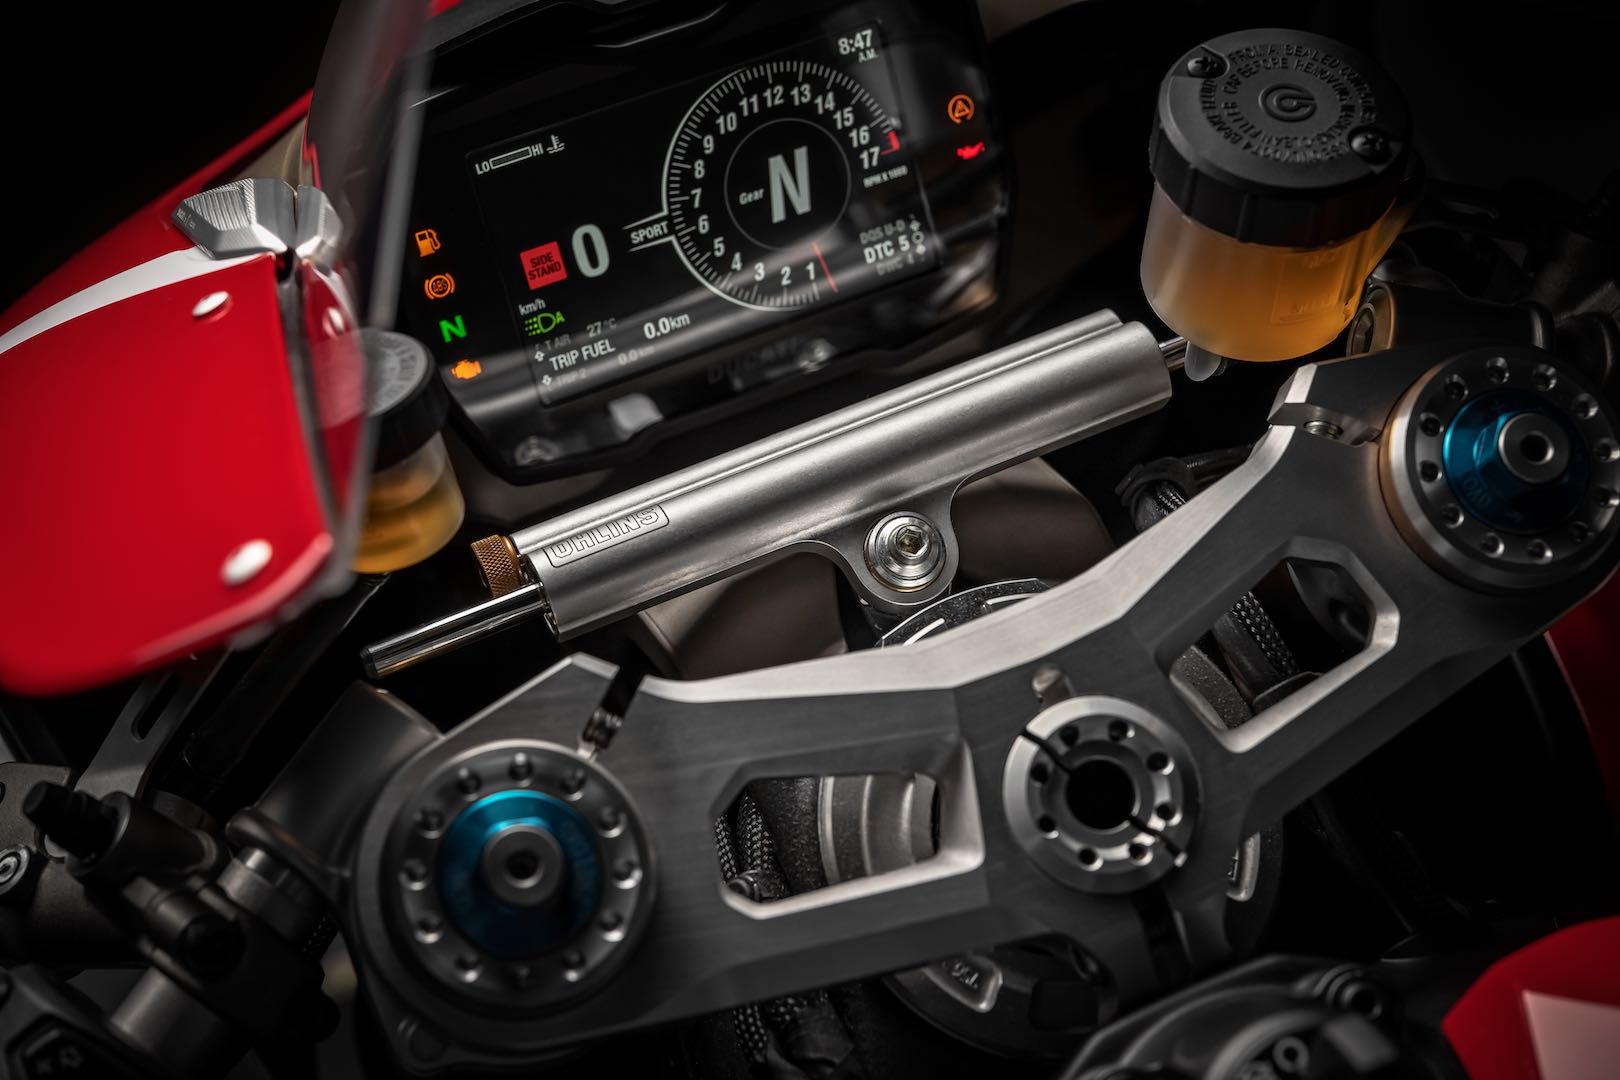 2019-ducati-panigale-v4-r-first-look-preview-20